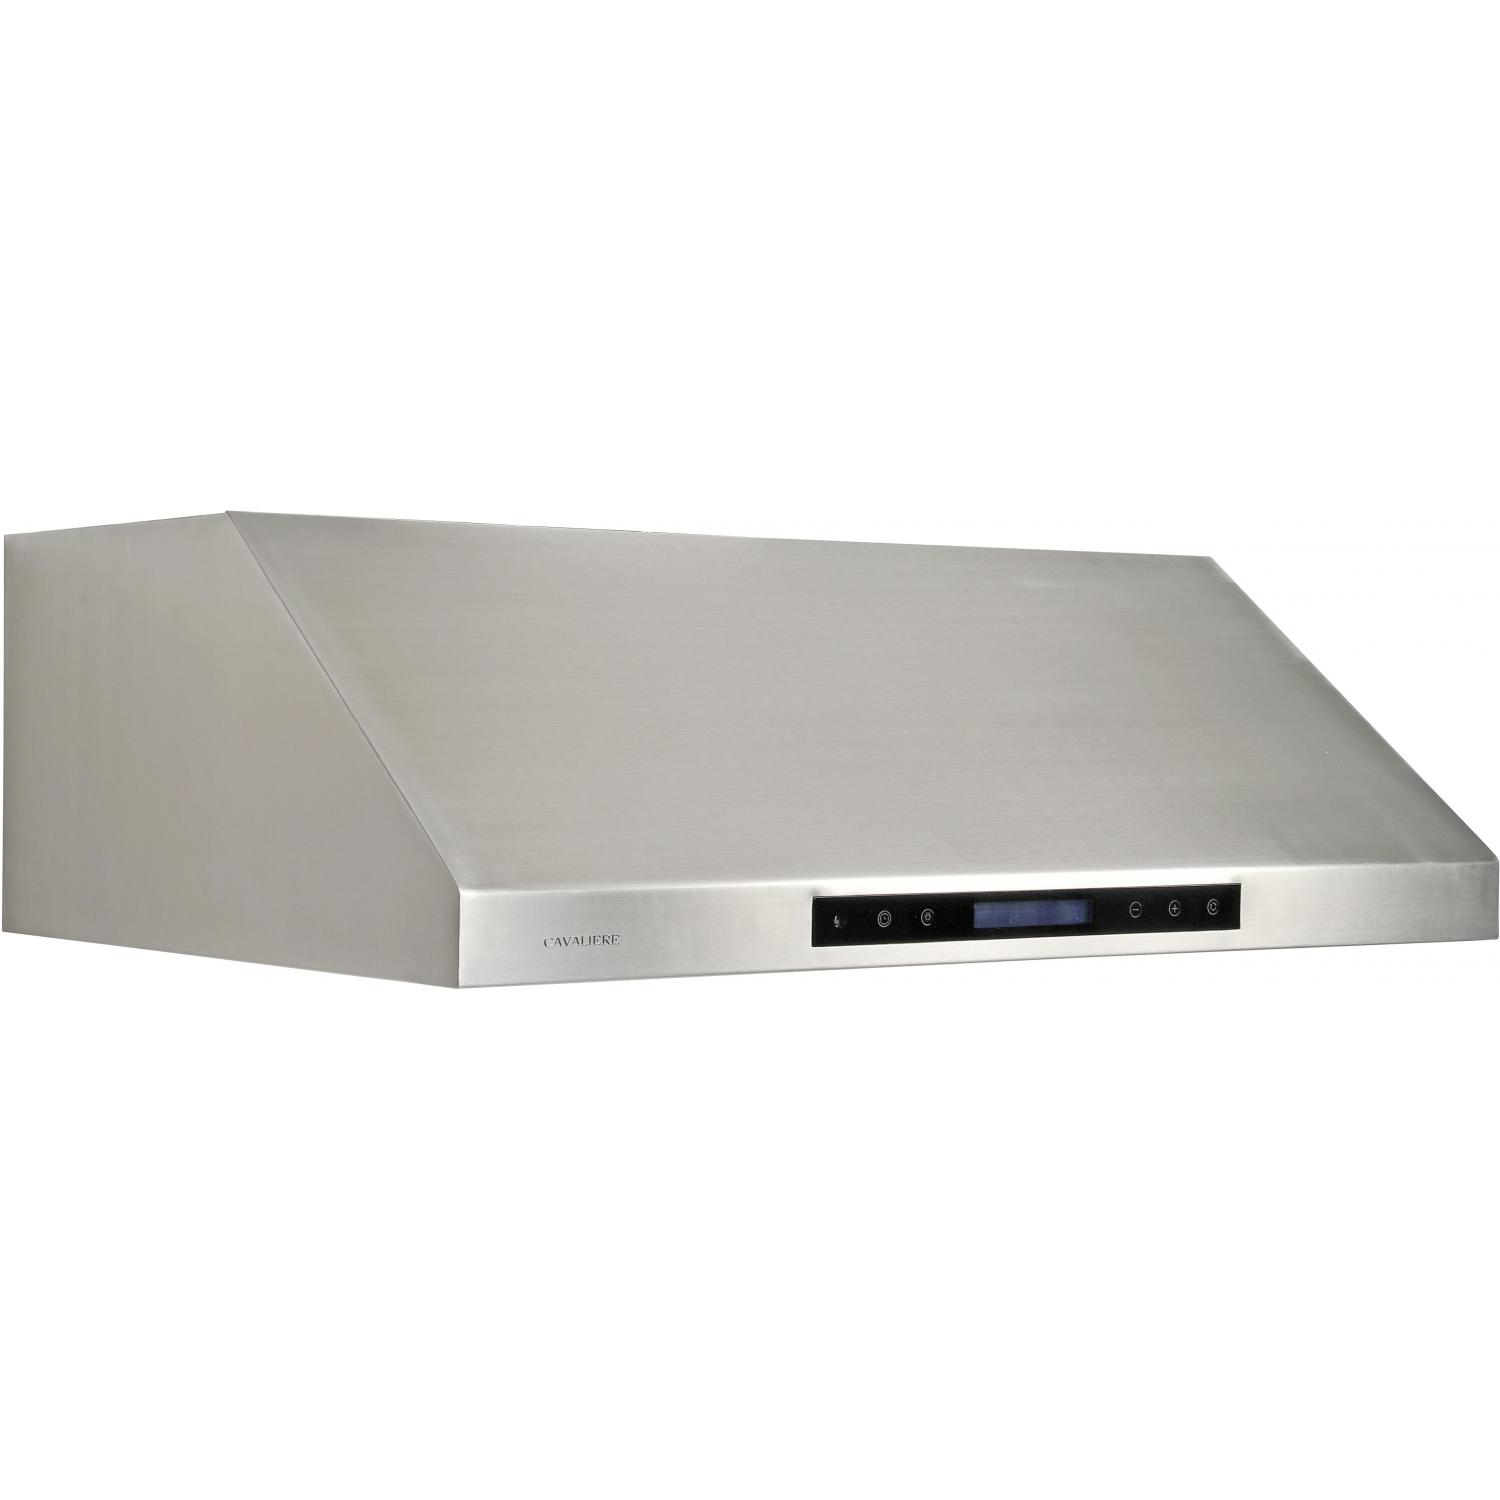 Cavaliere AirPRO 238 Professional Series 30-Inch 900 CFM Under Cabinet Range Hood - AP238-PS37-30